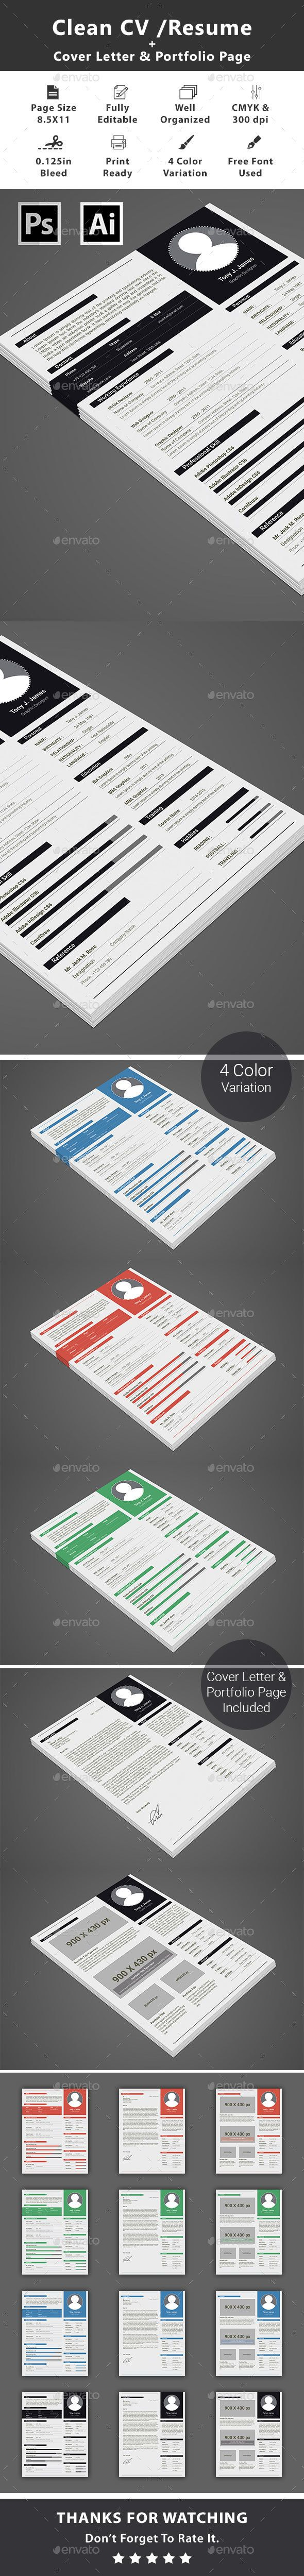 Purchasing Agent Resume Best  Resume Fonts Ideas On Pinterest  Create A Cv Resume  General Objectives For Resume Word with Computer Technician Resume Sample Clean Cvresume  Resumes Stationery Two Page Resume Sample Word